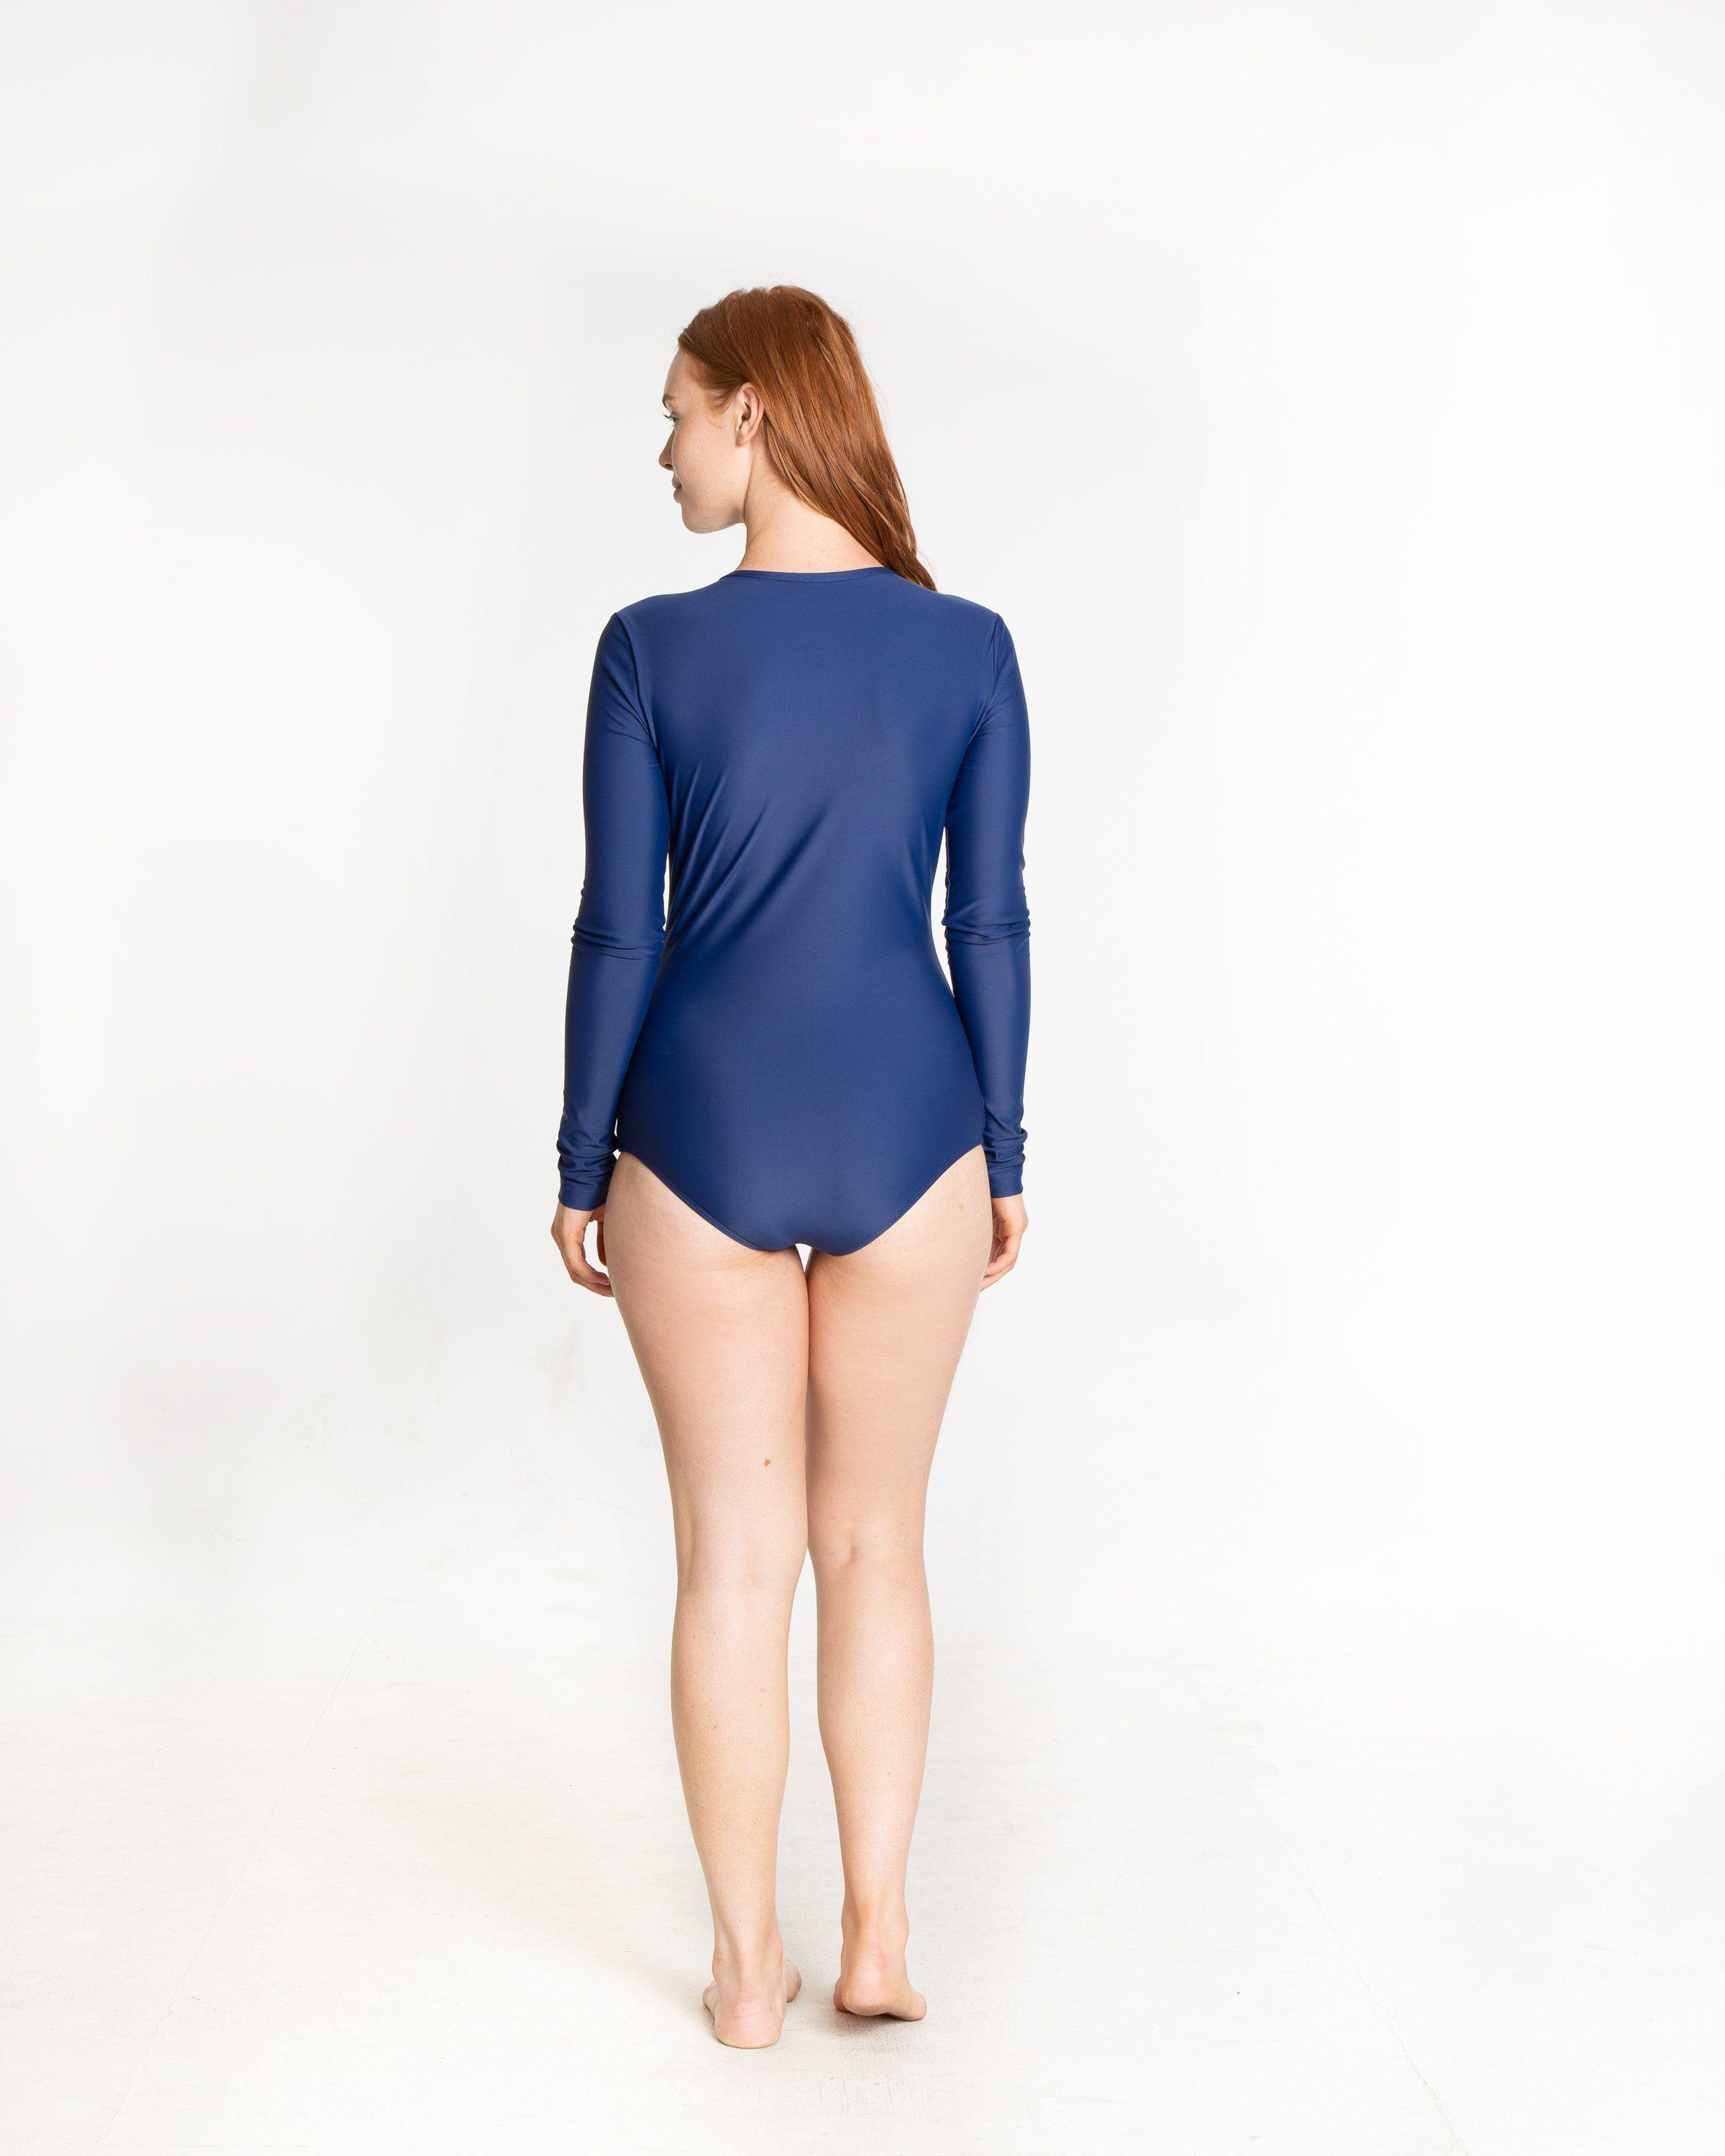 Long-Sleeved Front Zip Swimsuit 3